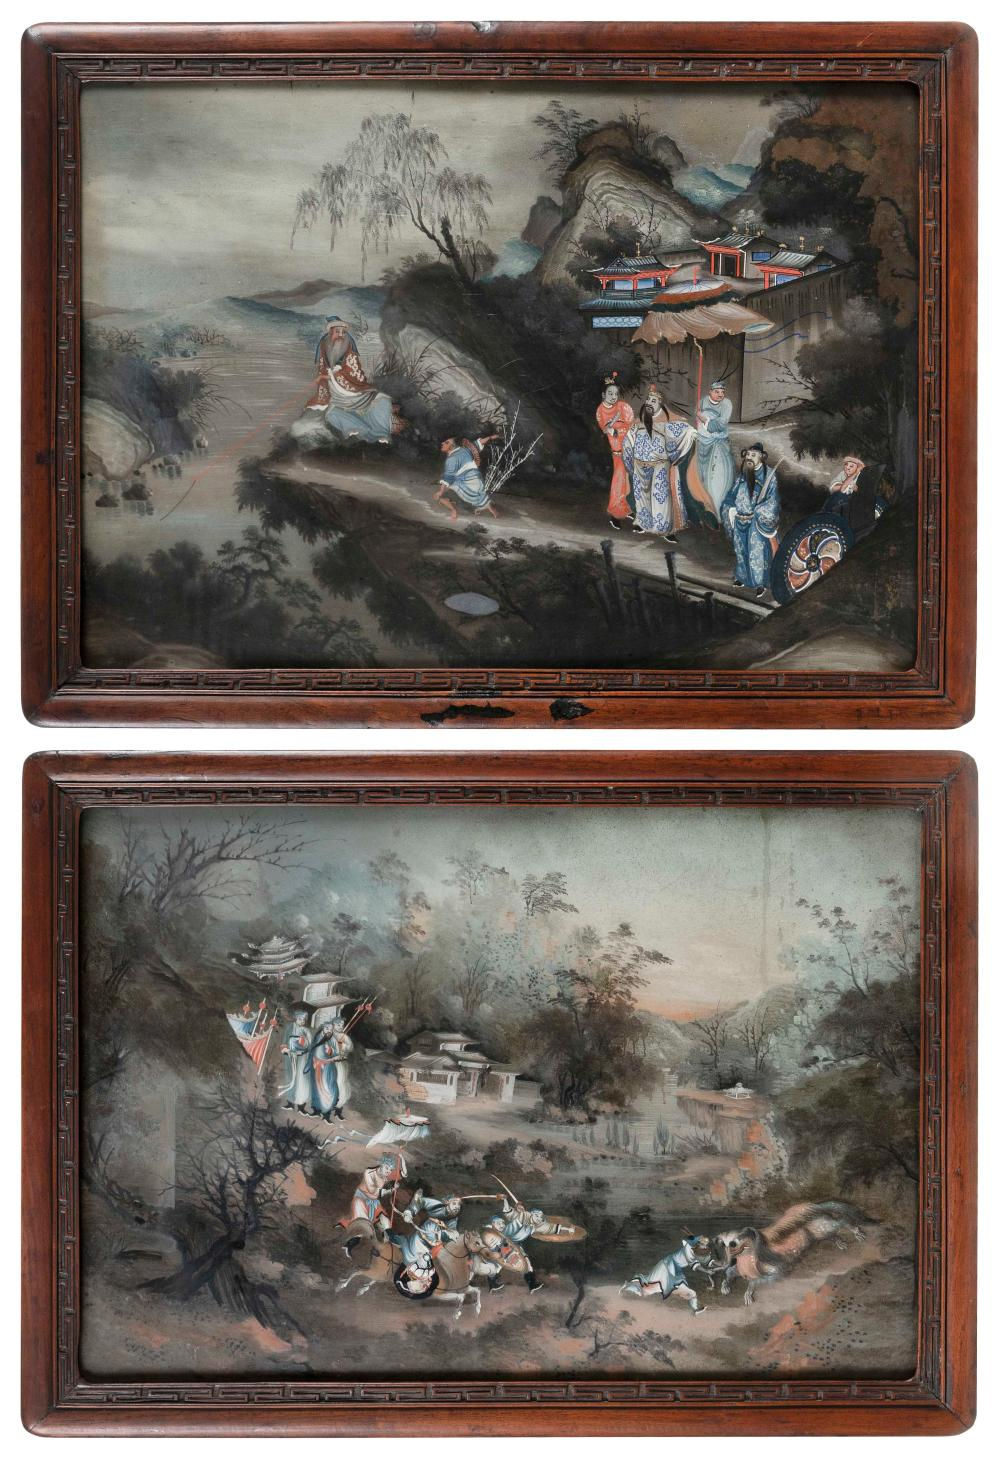 """PAIR OF CHINESE EXPORT REVERSE PAINTINGS ON GLASS 19th Century 16"""" x 23"""". Framed 19"""" x 26""""."""